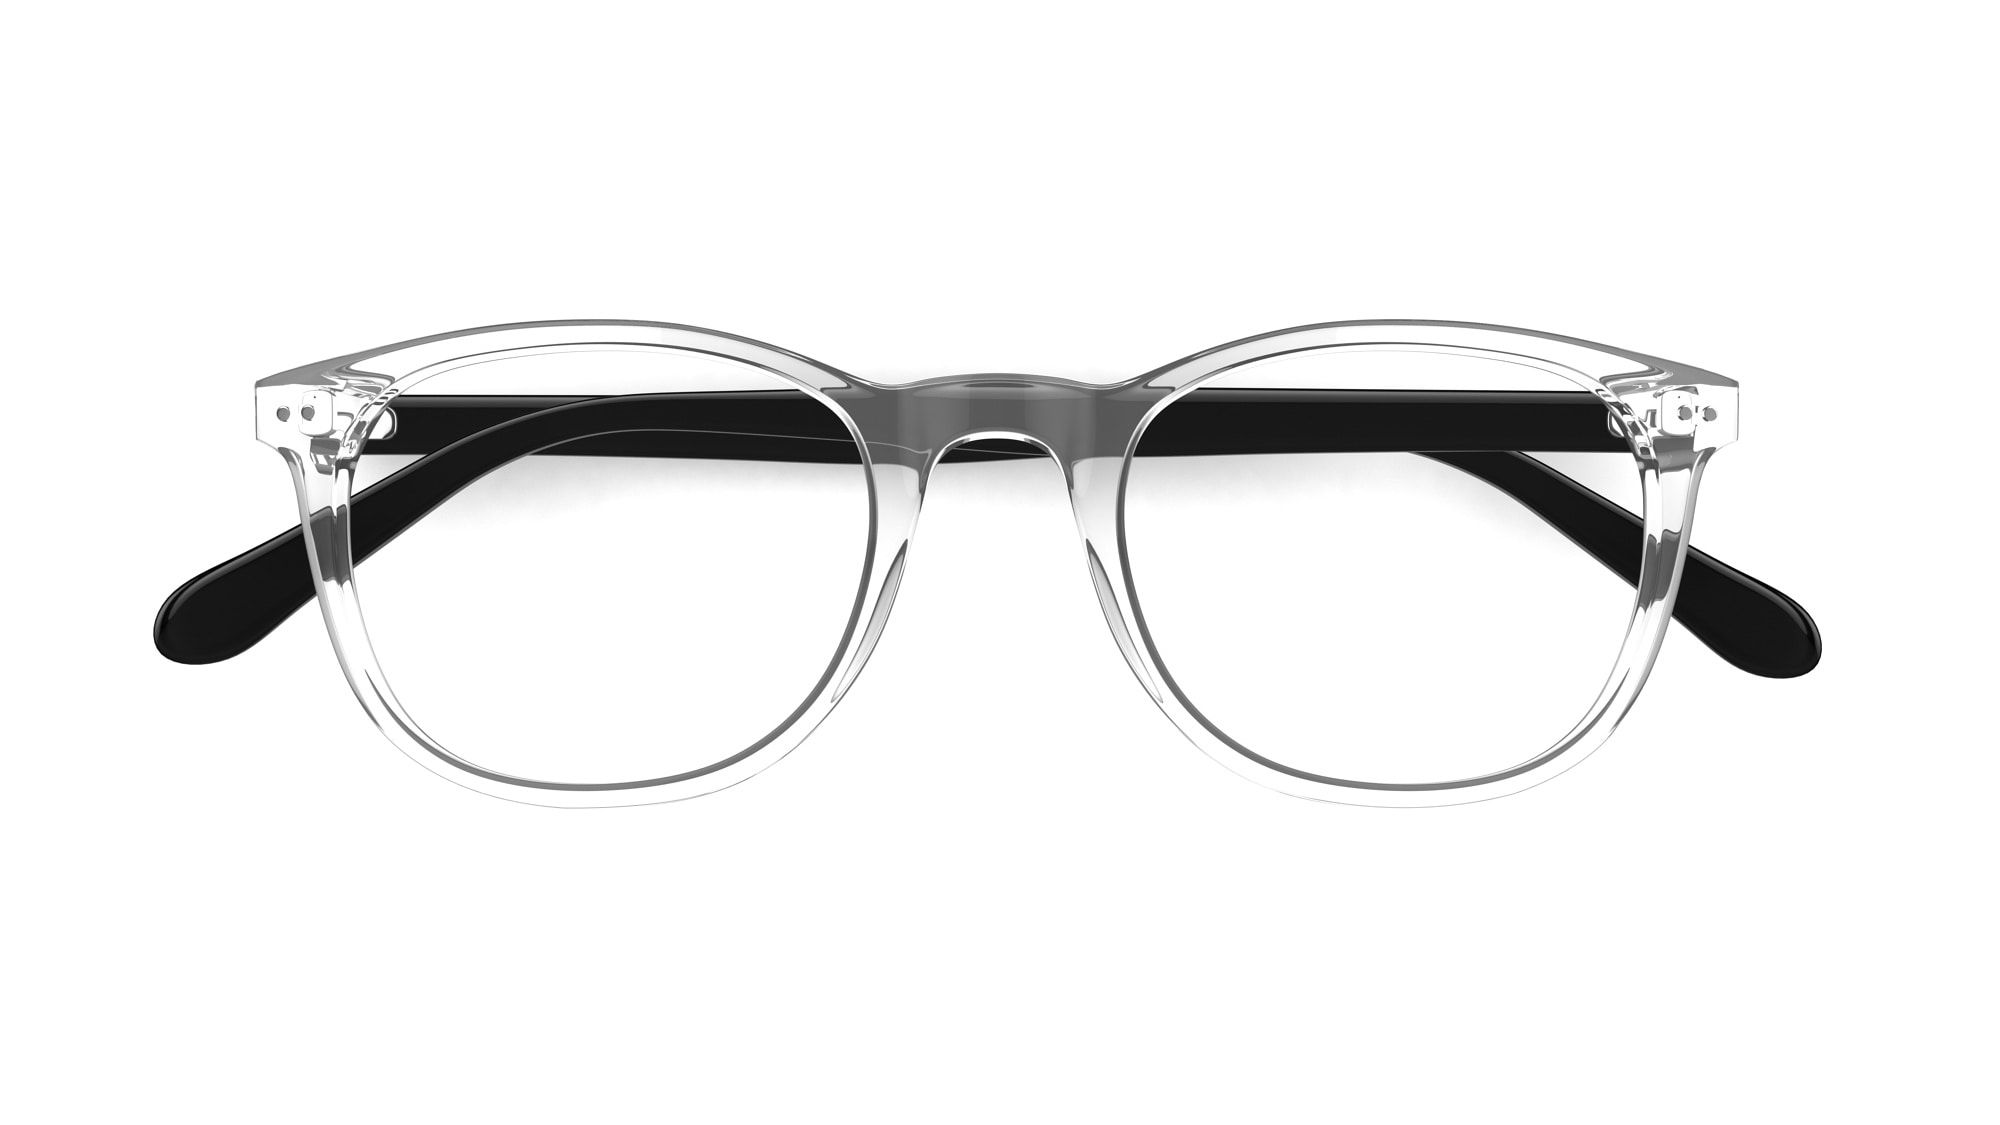 d525409be722 cindy Glasses by Specsavers. Specsavers glasses - CINDY Cat Eye ...